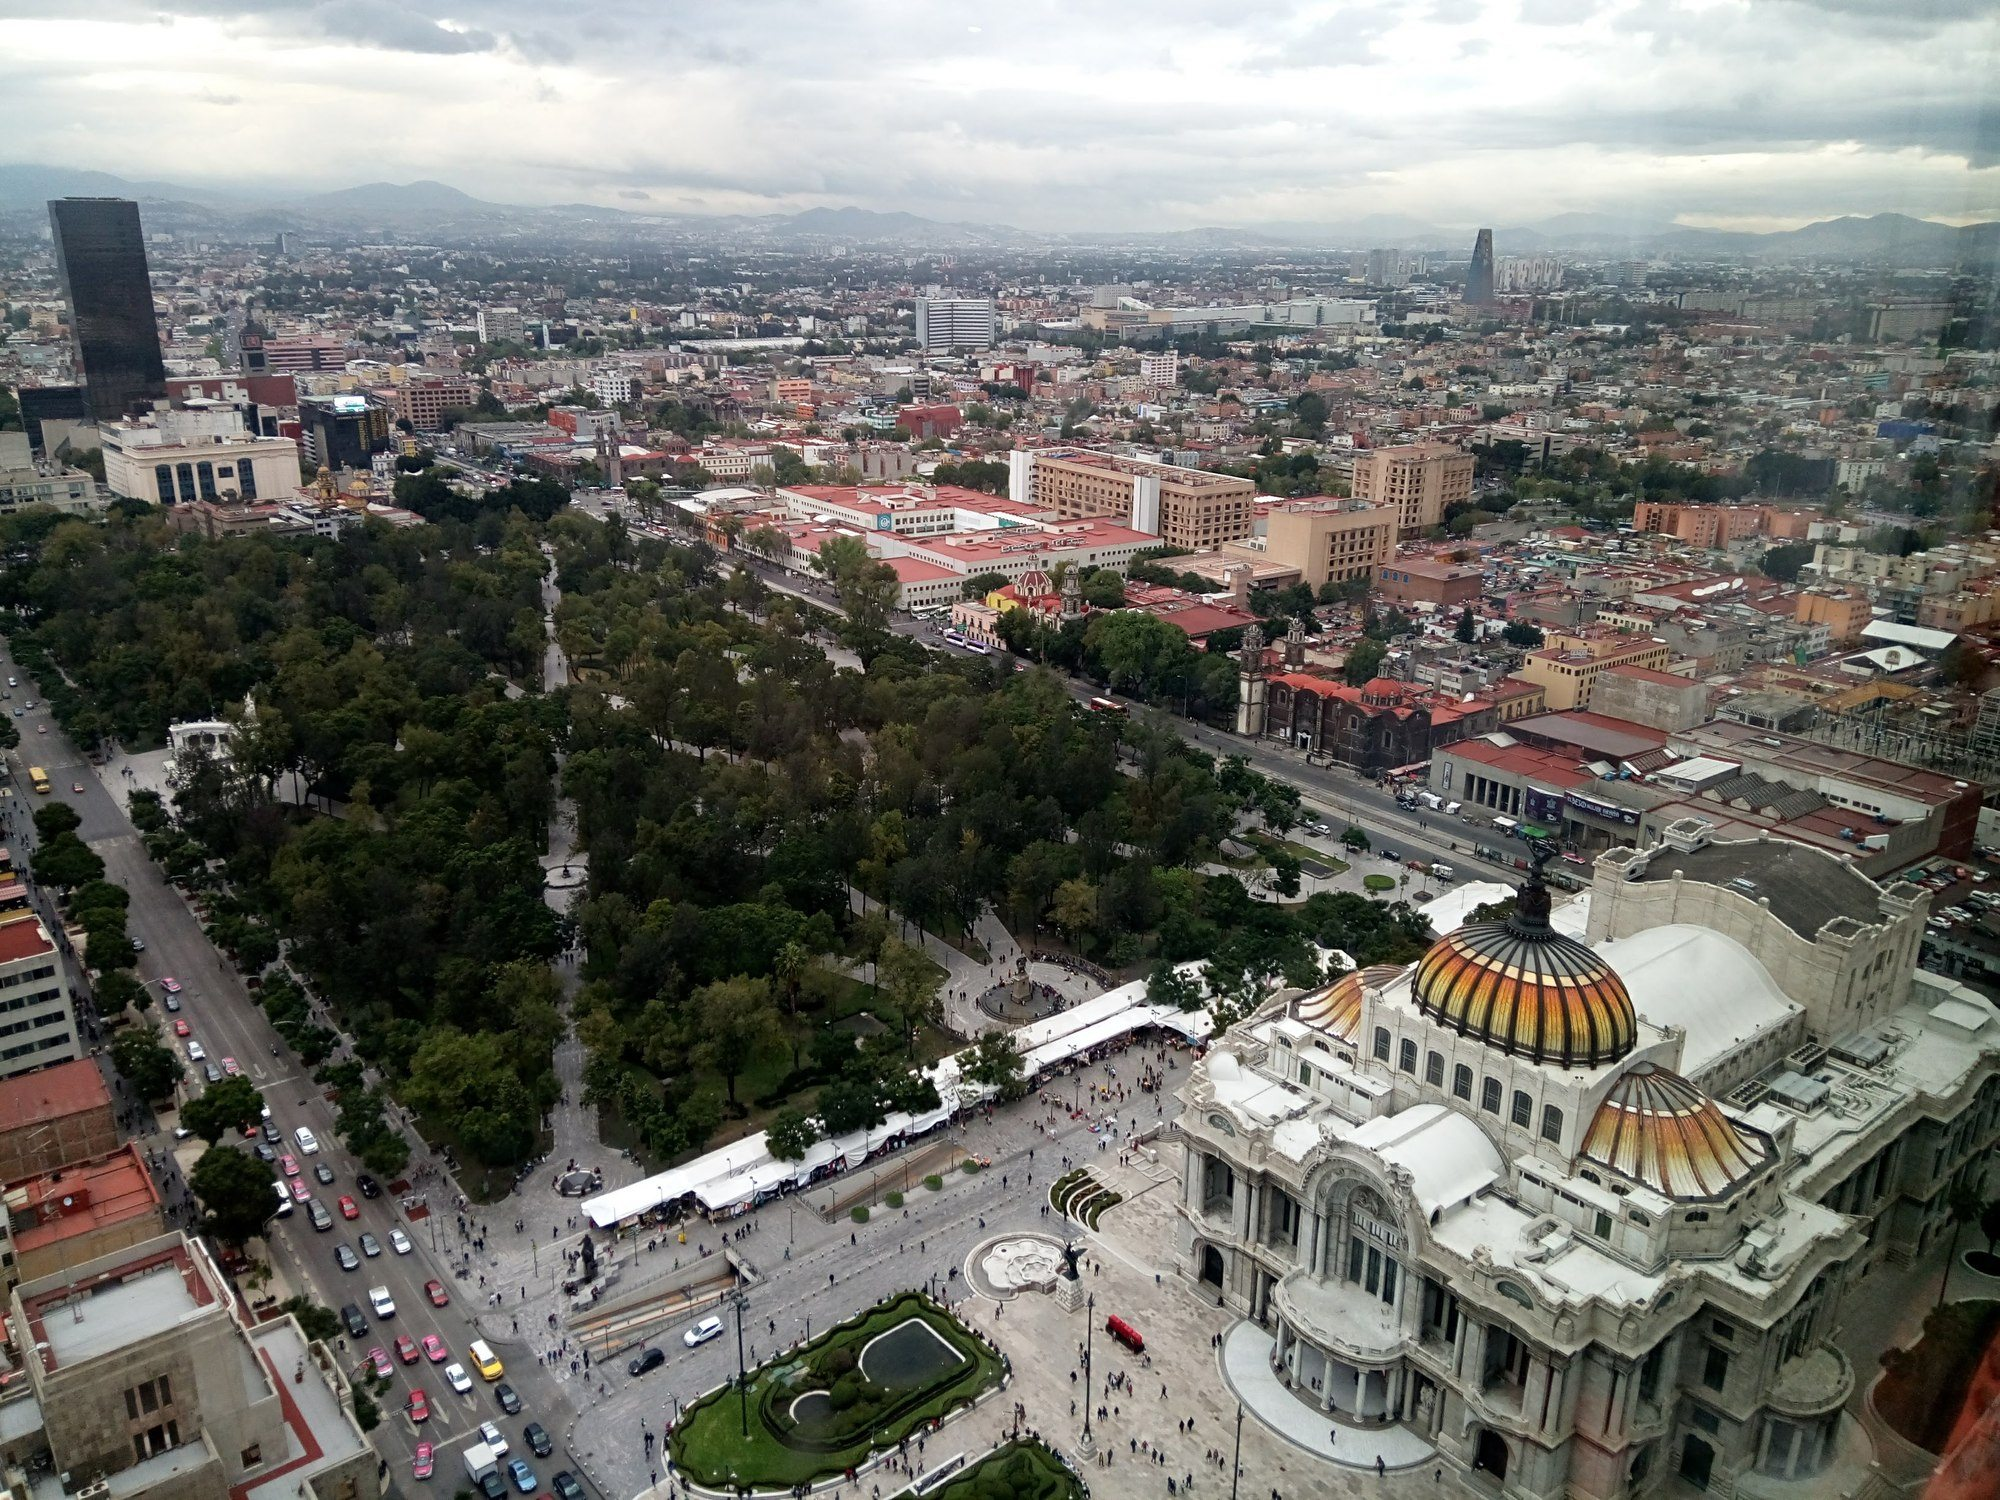 View from Torree Latinoamericiana